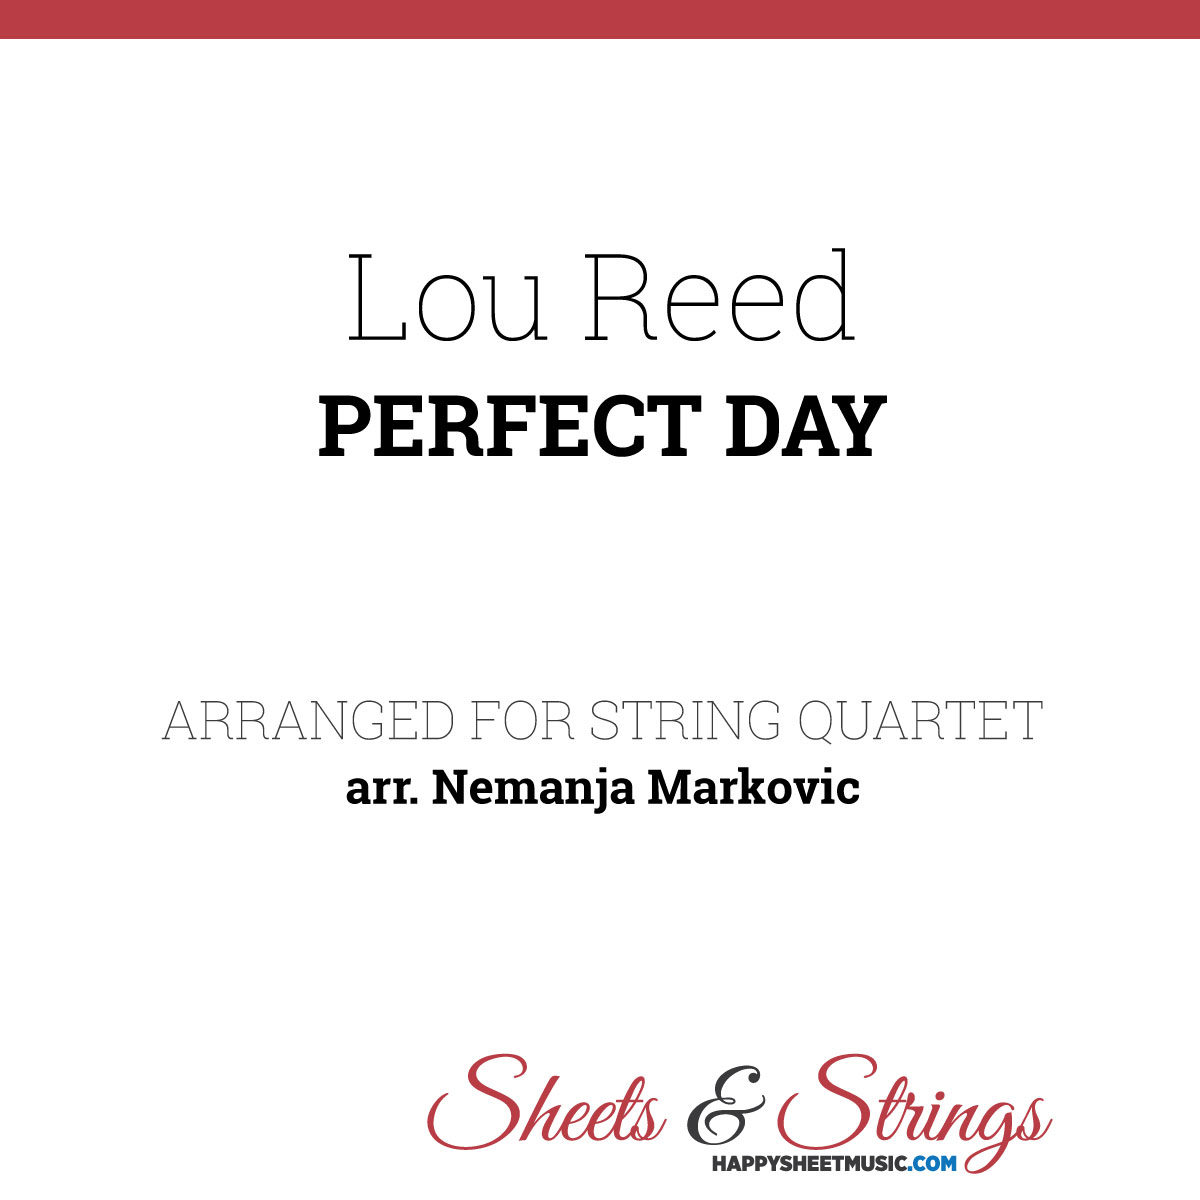 Lou Reed - Perfect Day Sheet Music for String Quartet - Music Arrangement for String Quartet